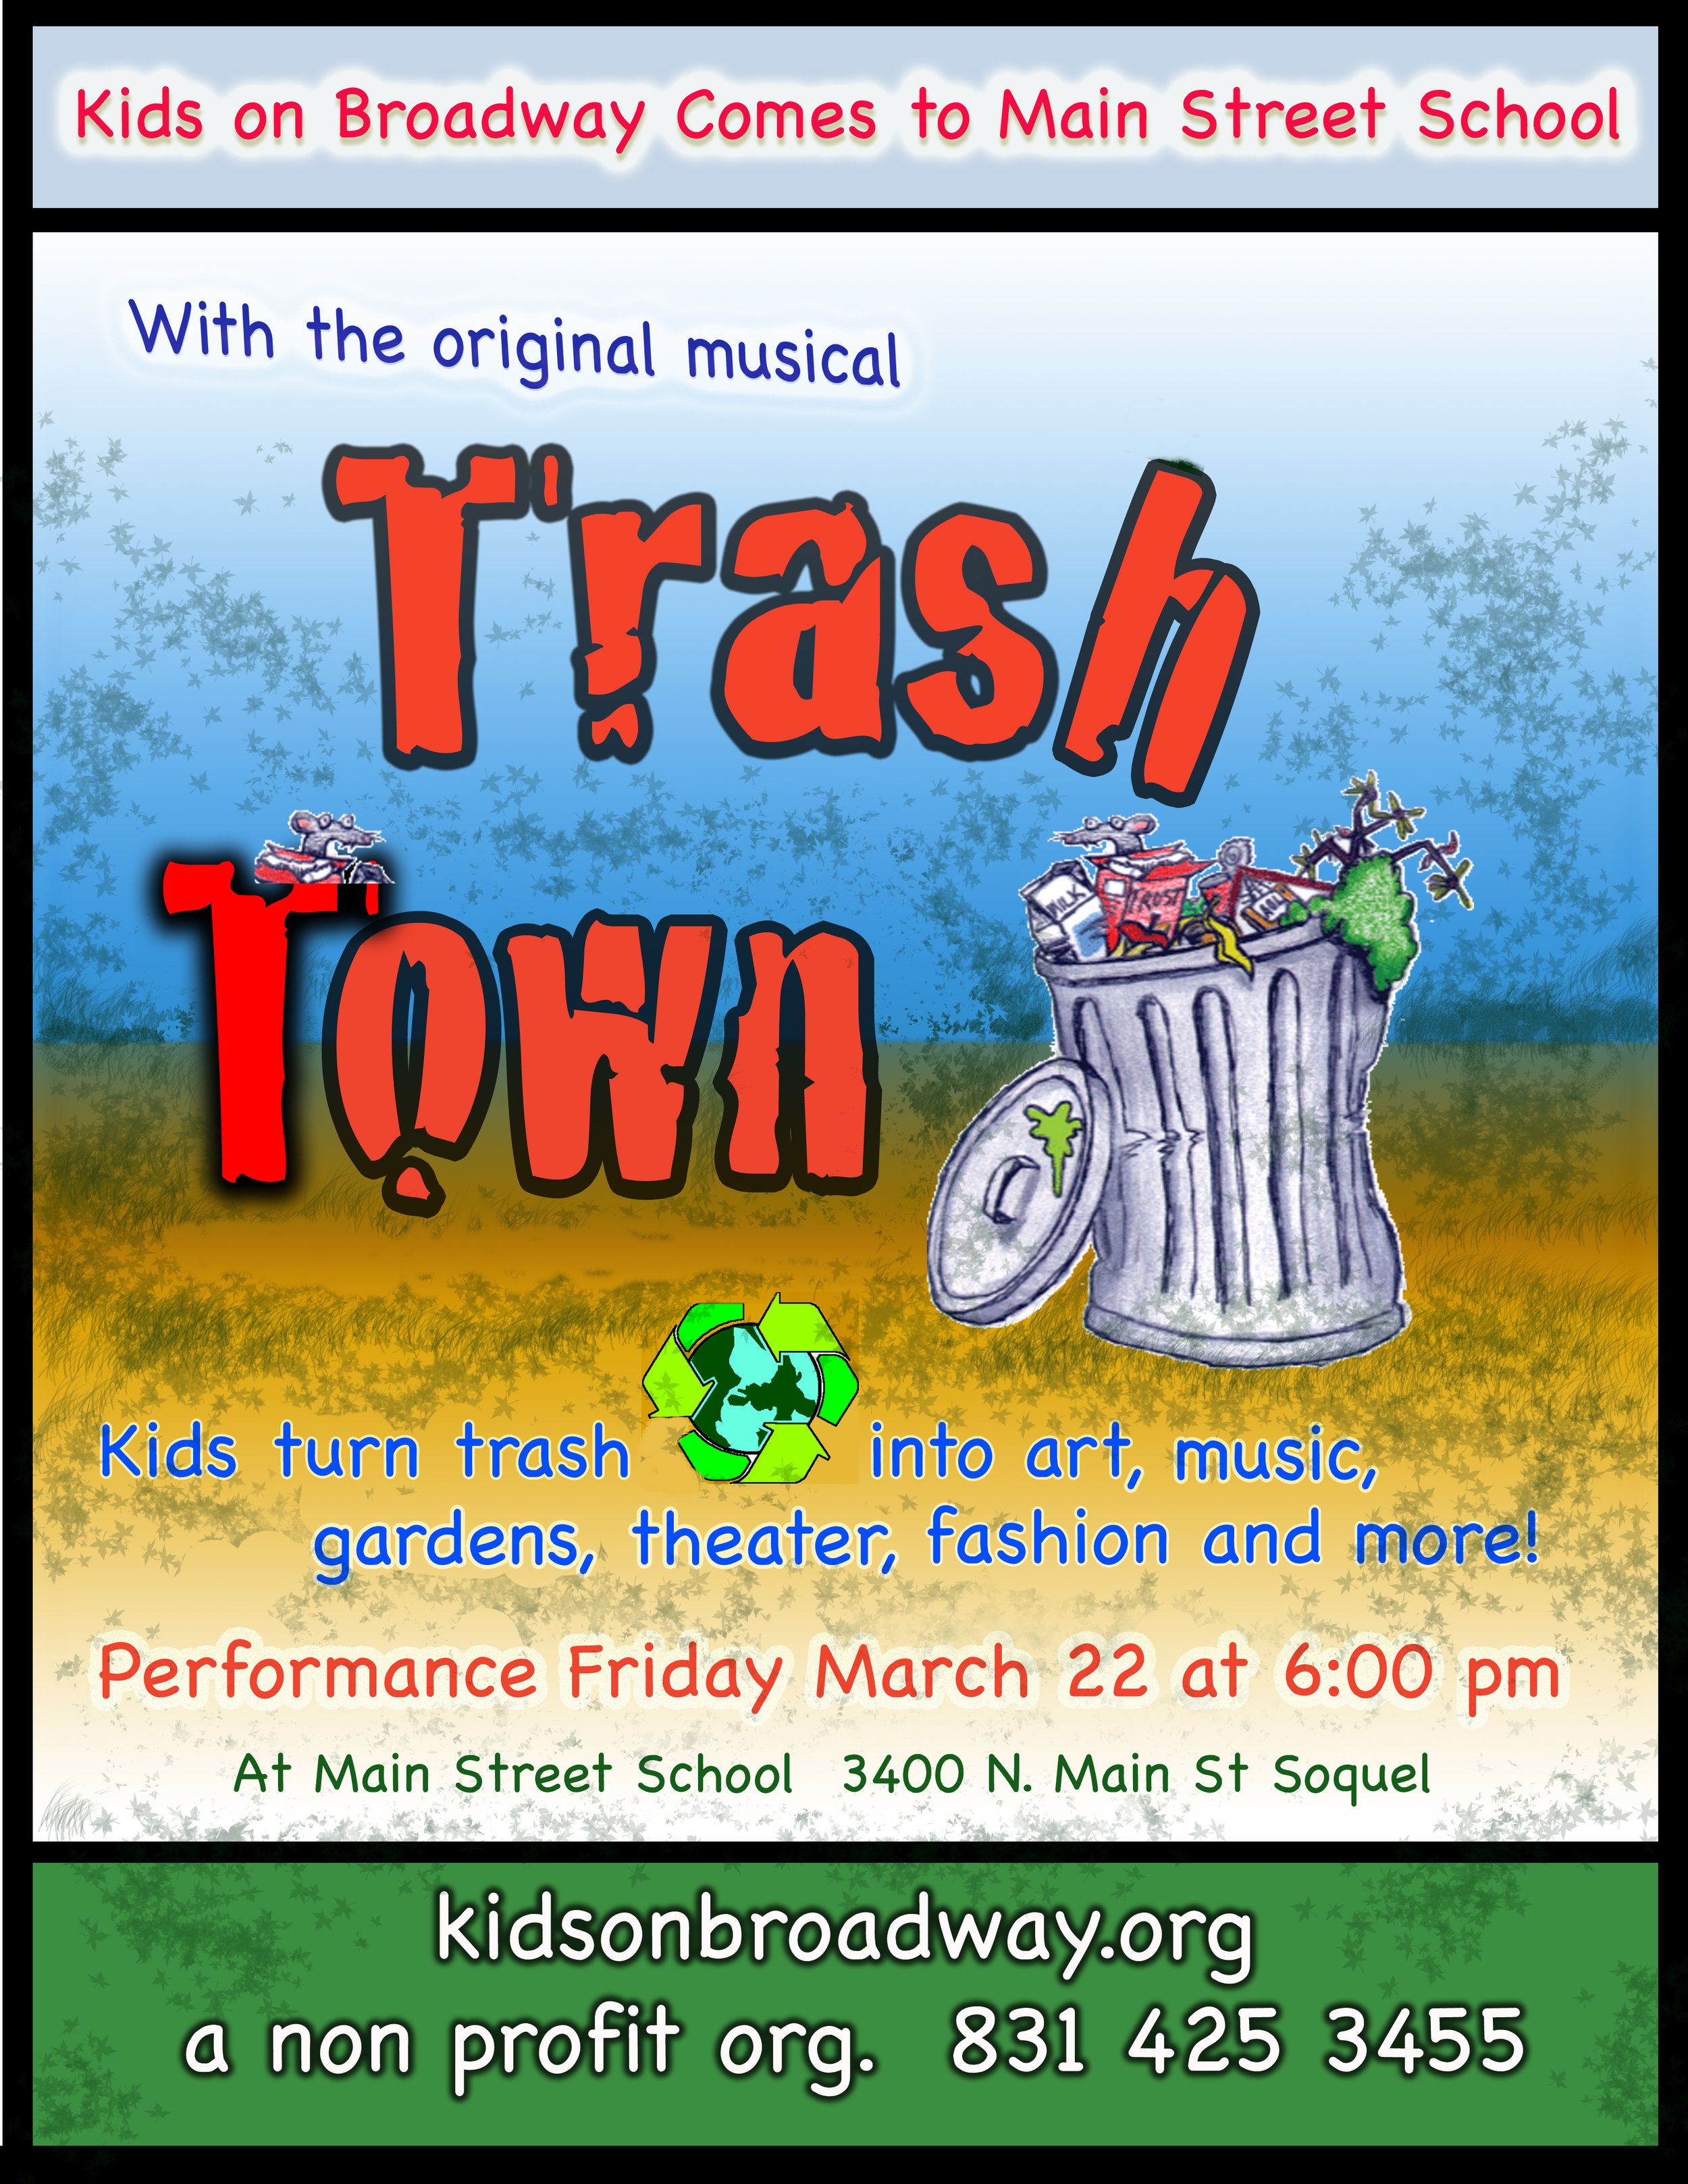 oooTrash Town image copy 2.jpg